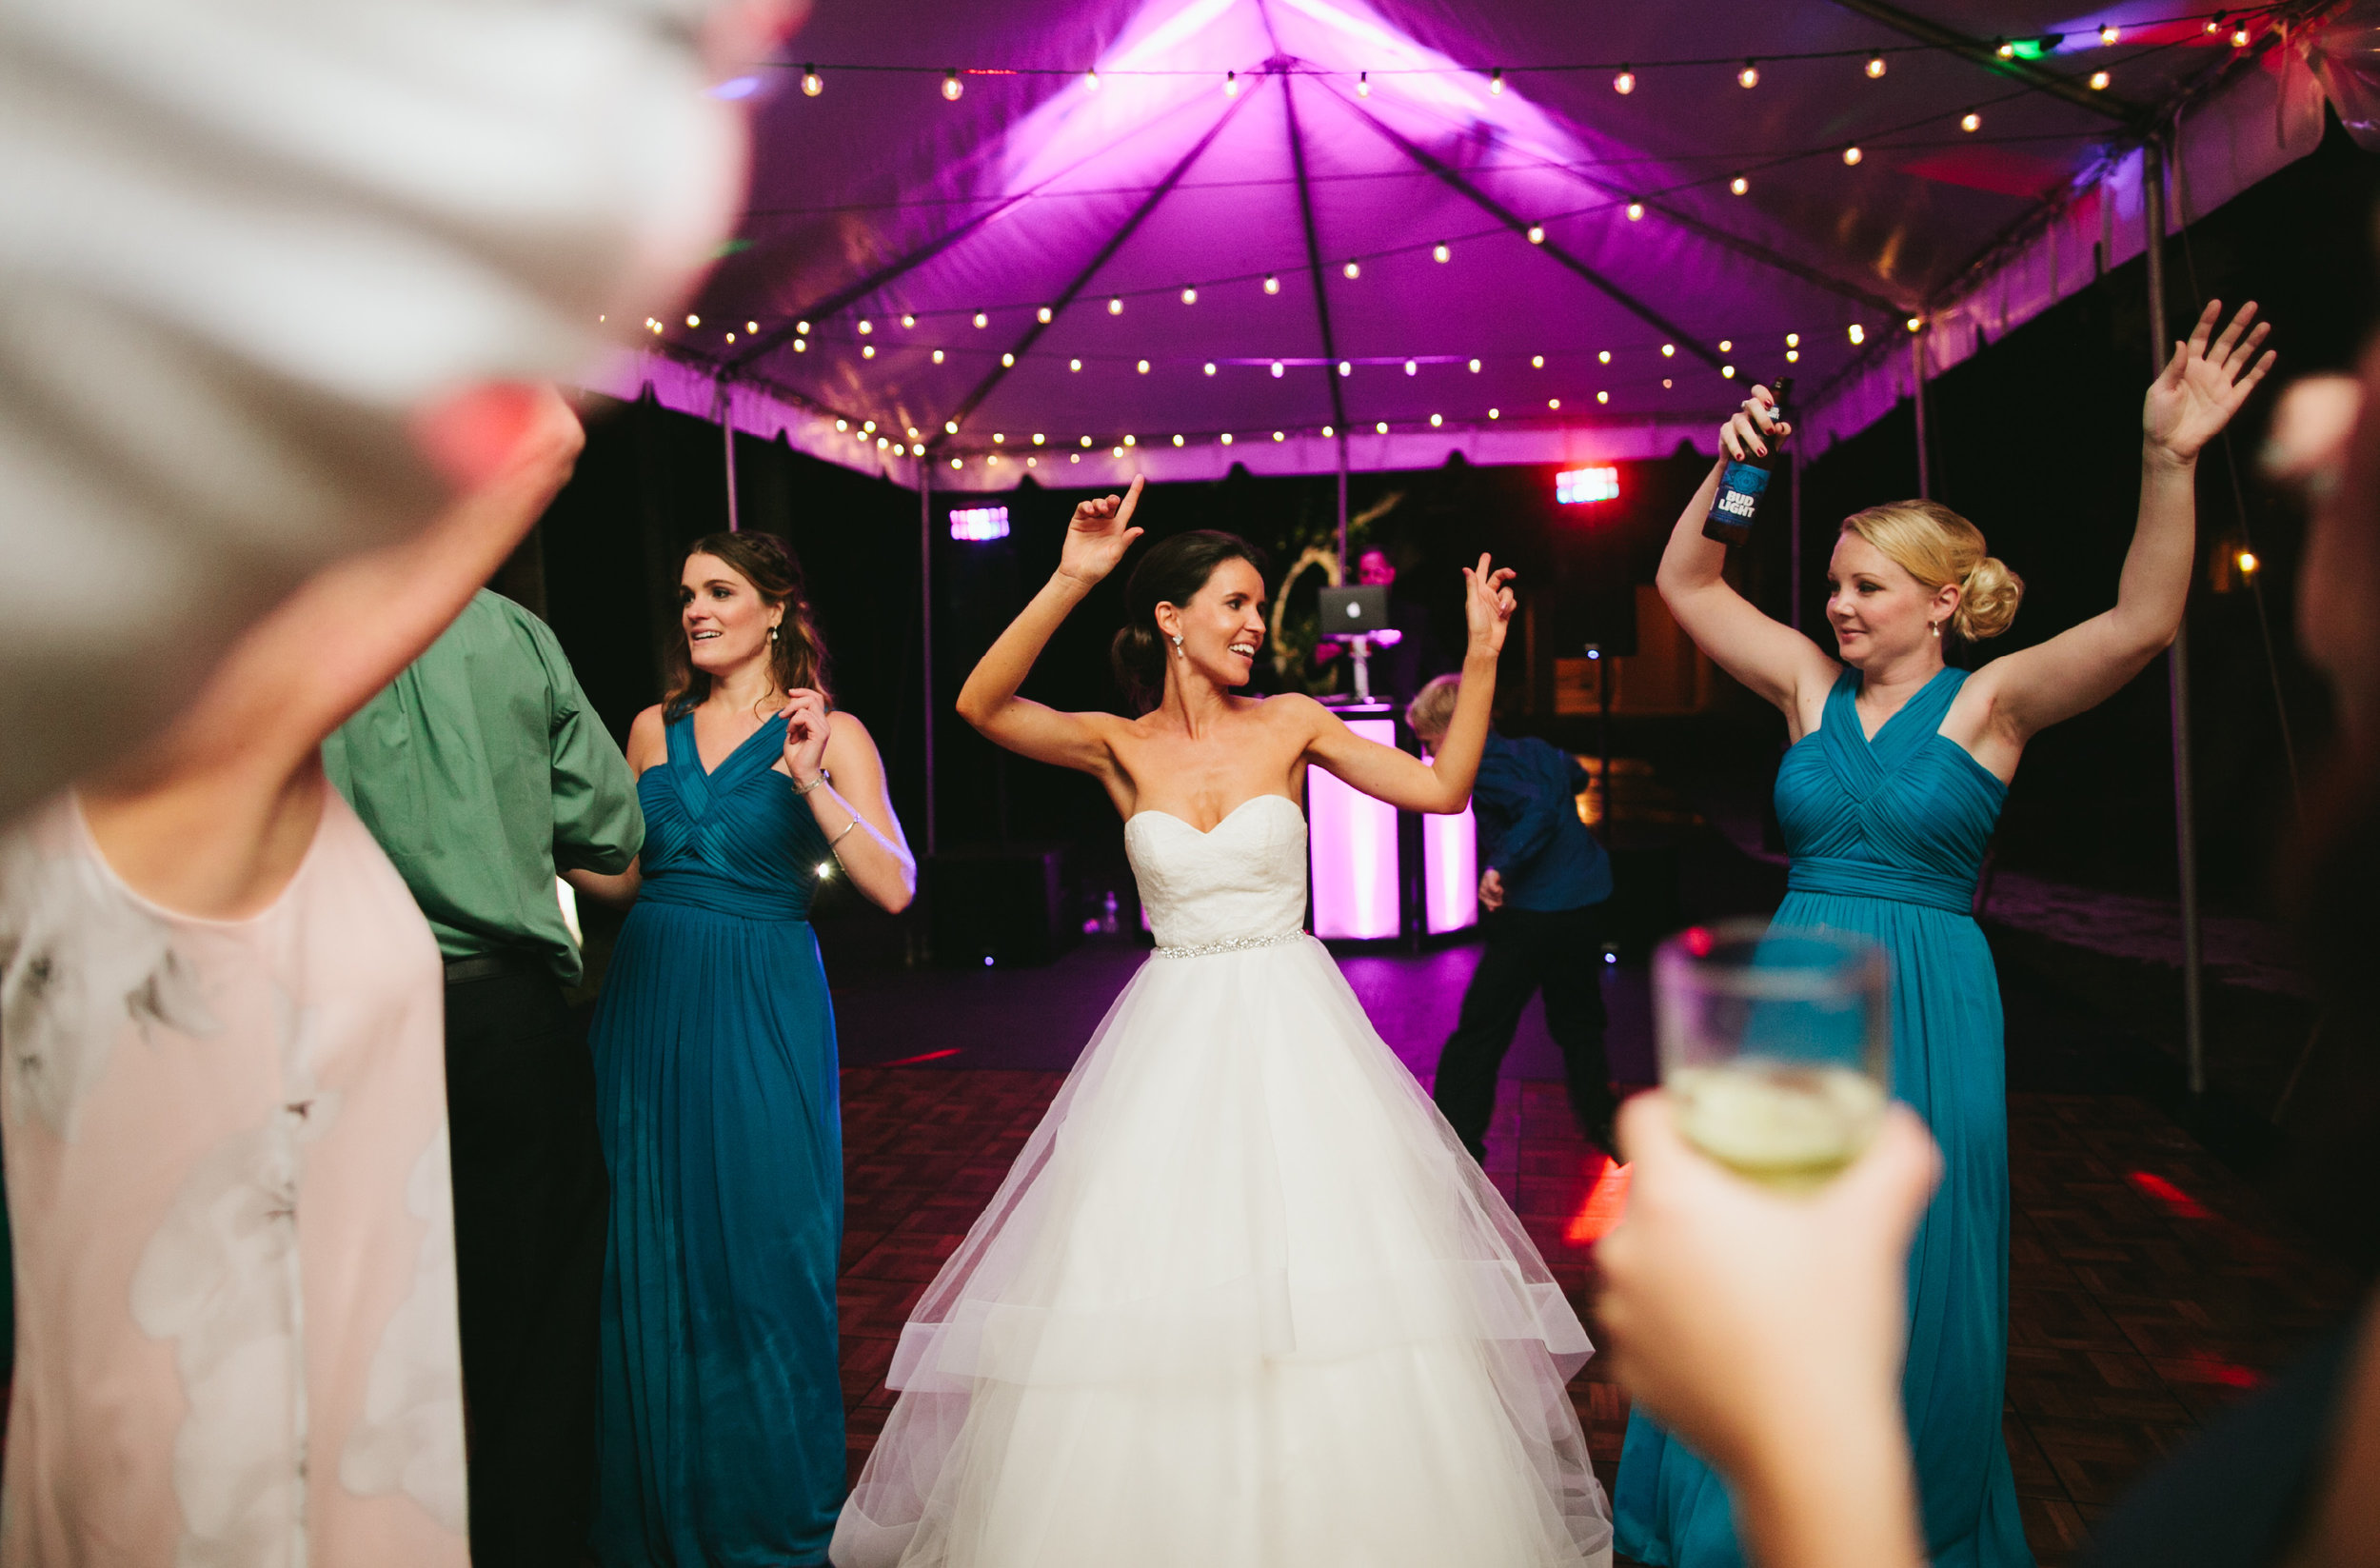 Heather + Greg's Wedding at the Bonnet House Ft Lauderdale78.jpg